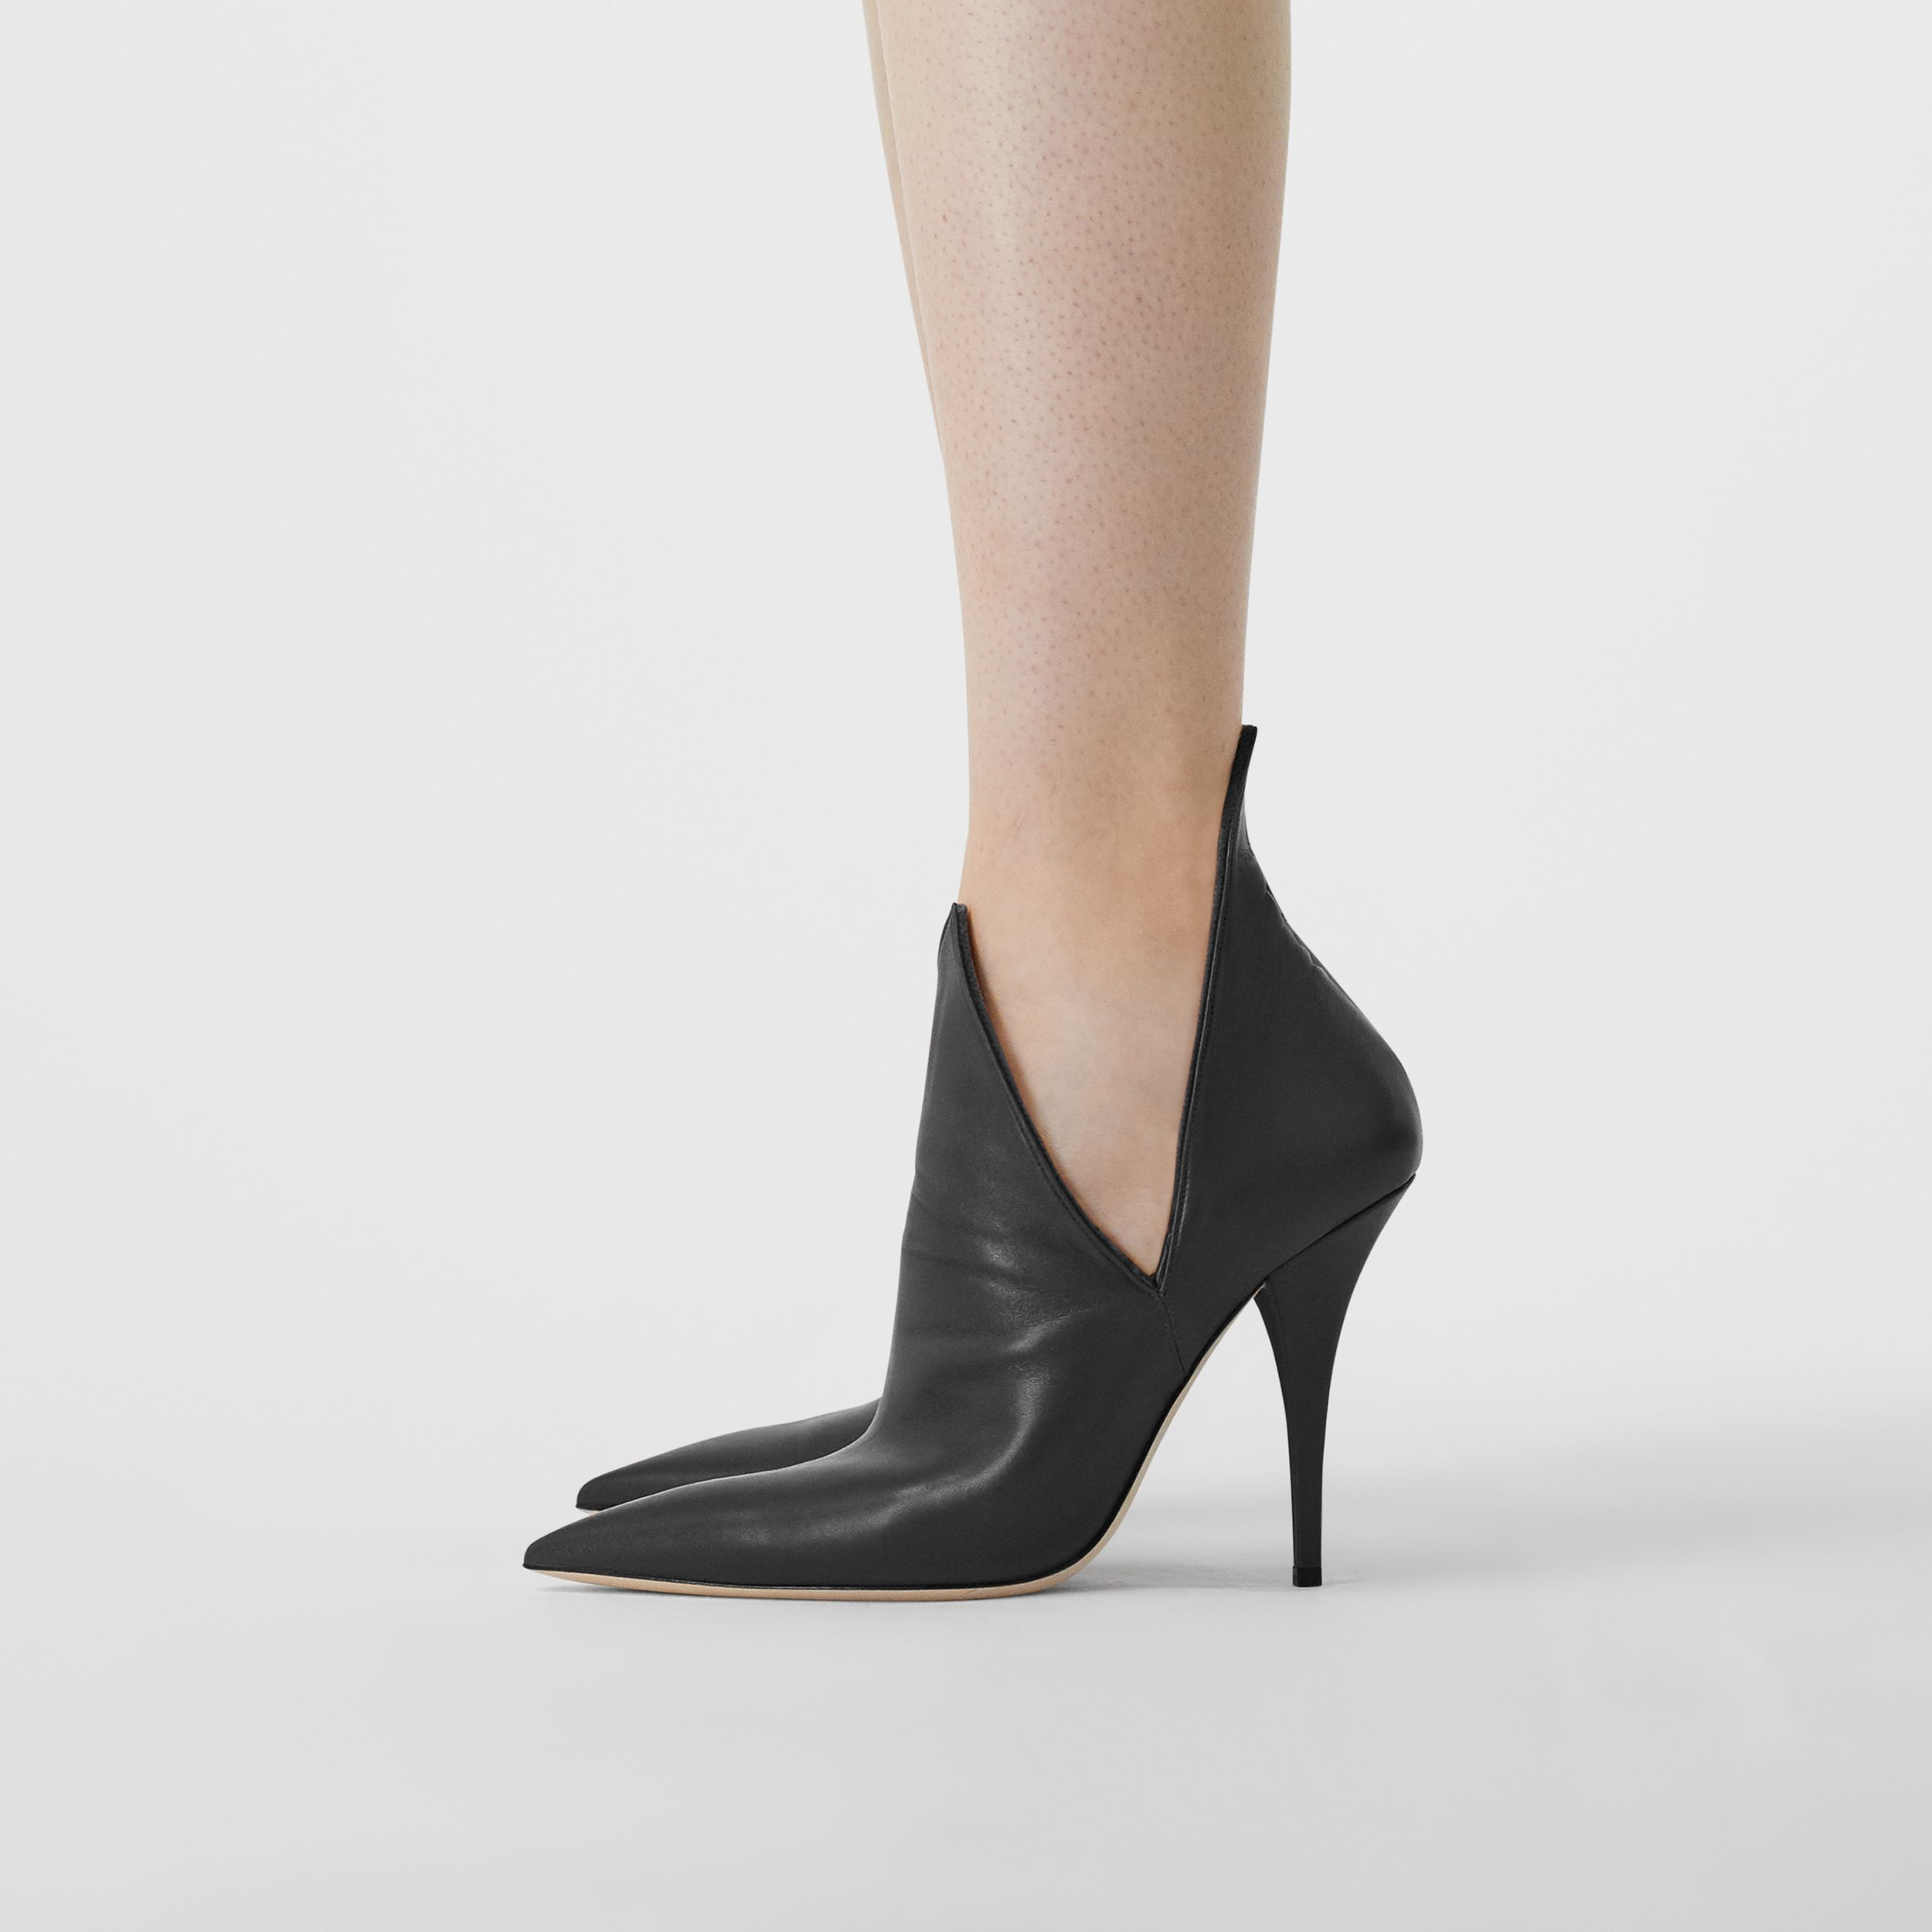 Velvet and Lambskin Foldover Point-toe Pumps in Black - Women | Burberry - 3